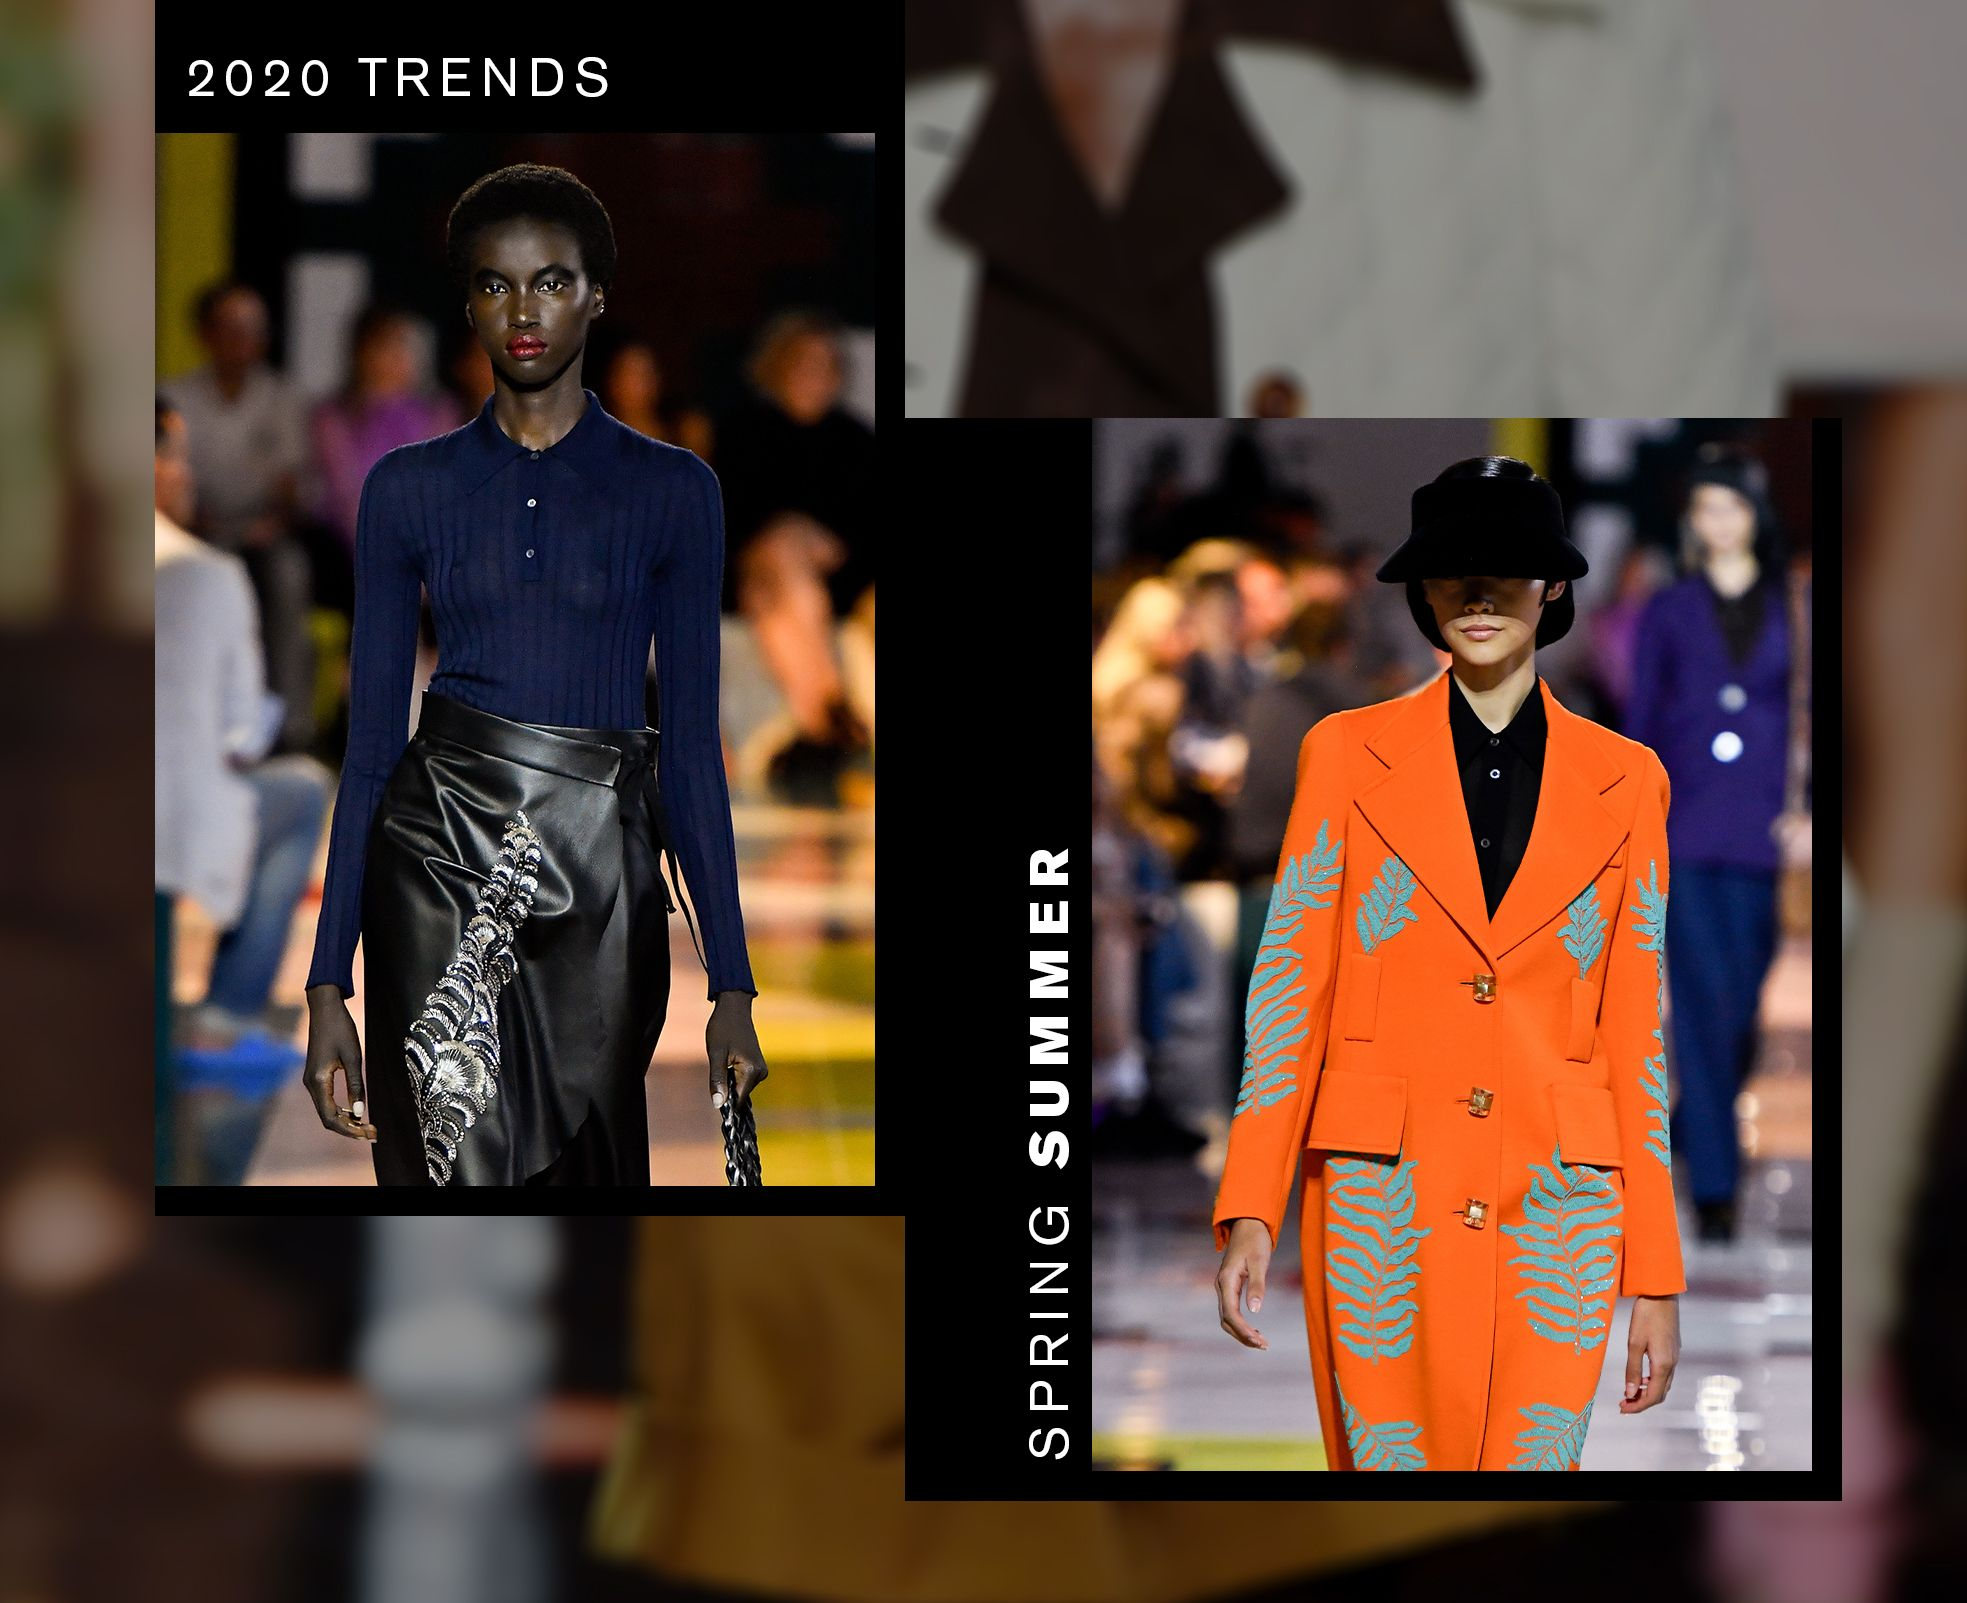 Spring/Summer 2020 Fashion Trends: What We'll be Wearing This Year